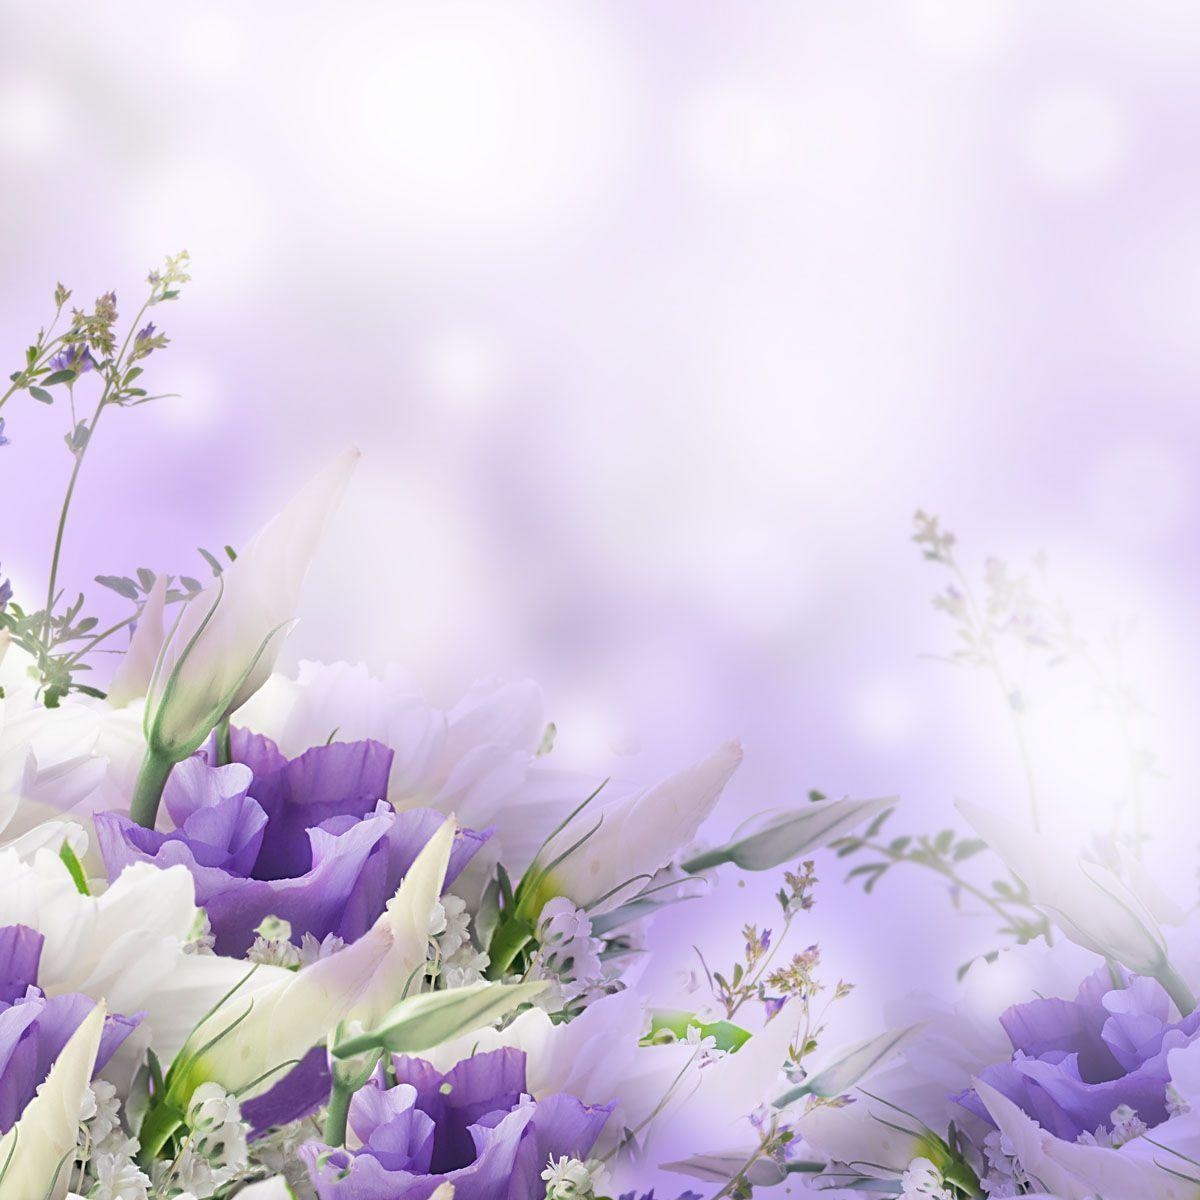 Funeral Backgrounds Pictures - Wallpaper Cave